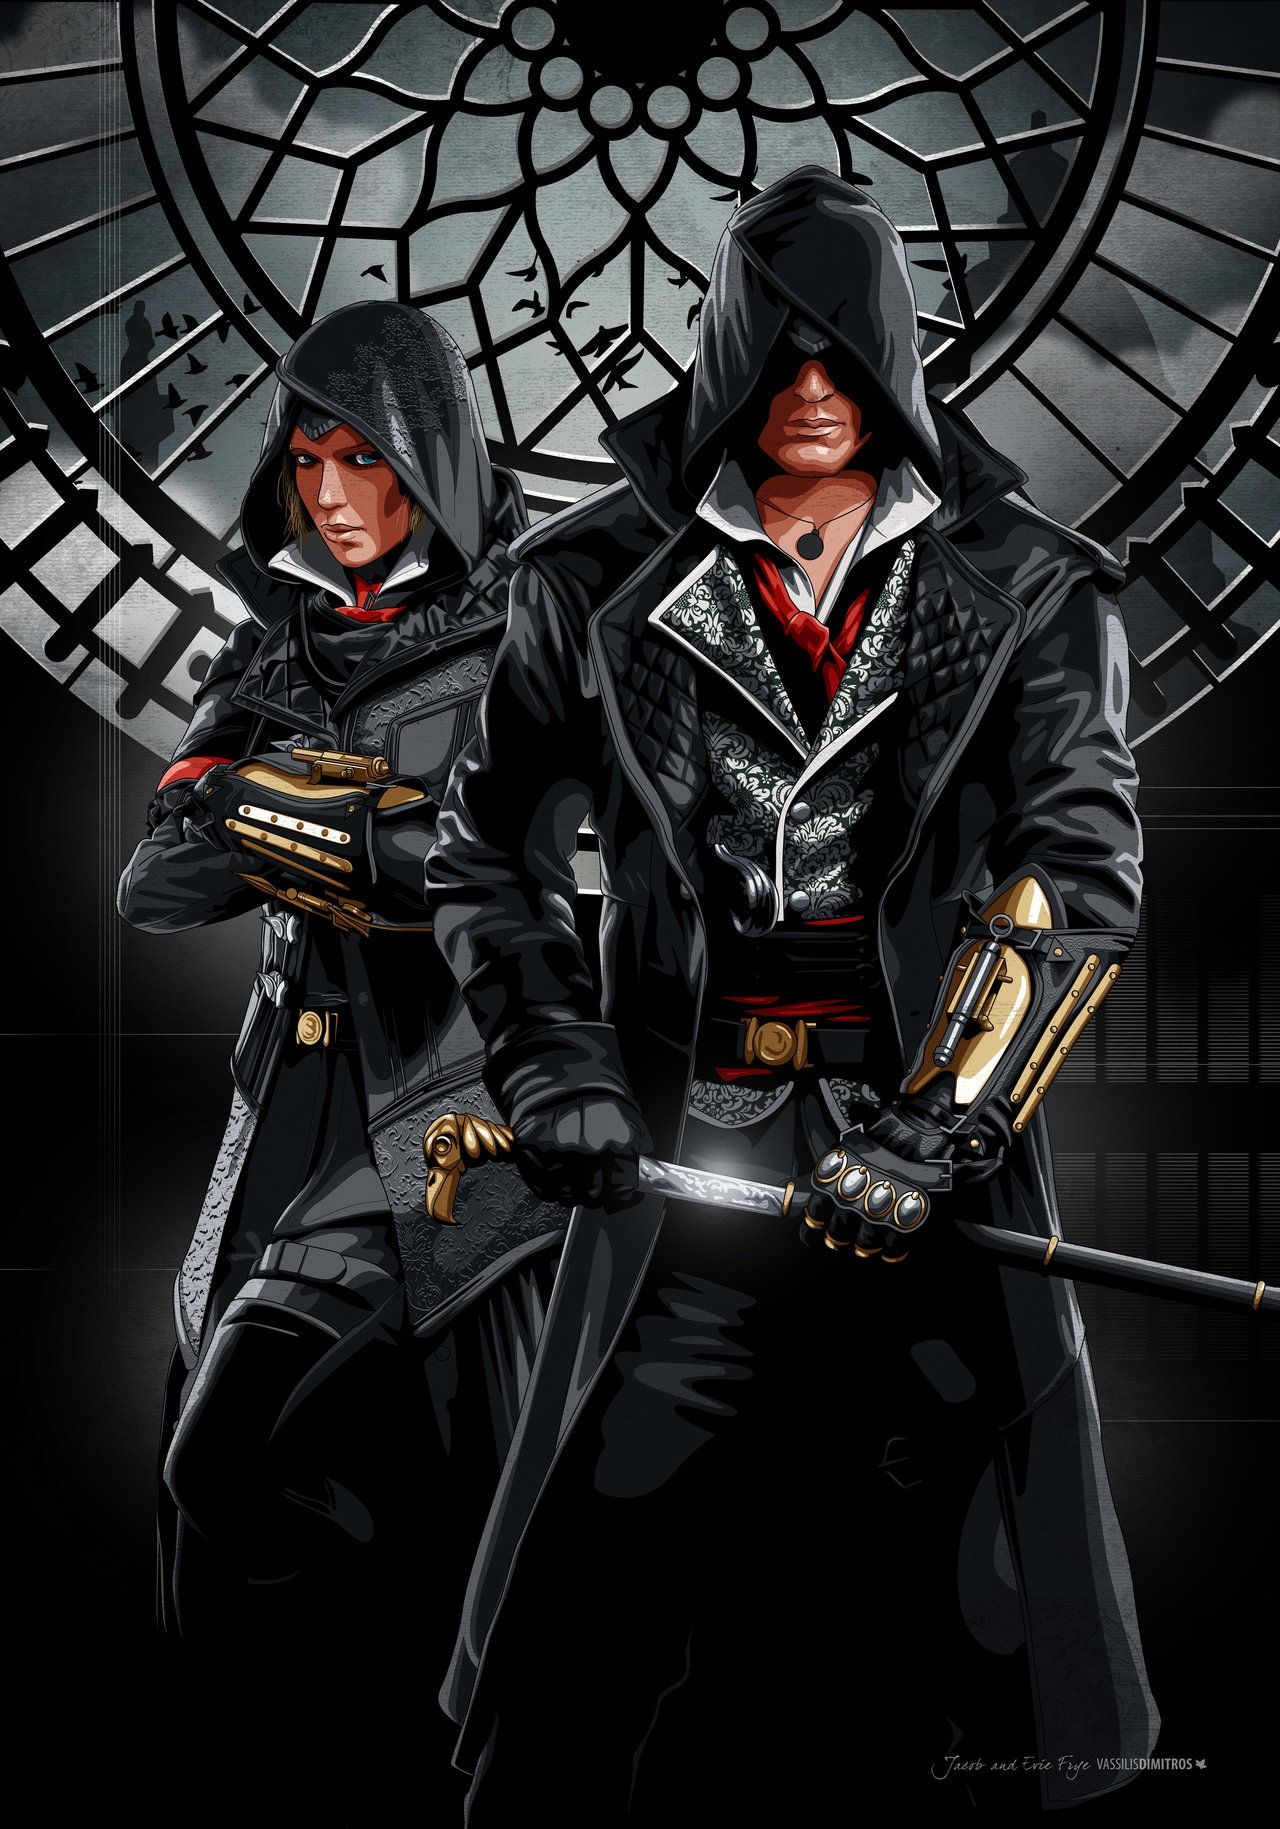 Jacob And Evie Frye London 1868 Assassins Creed Art Assassins Creed Syndicate Assassin S Creed